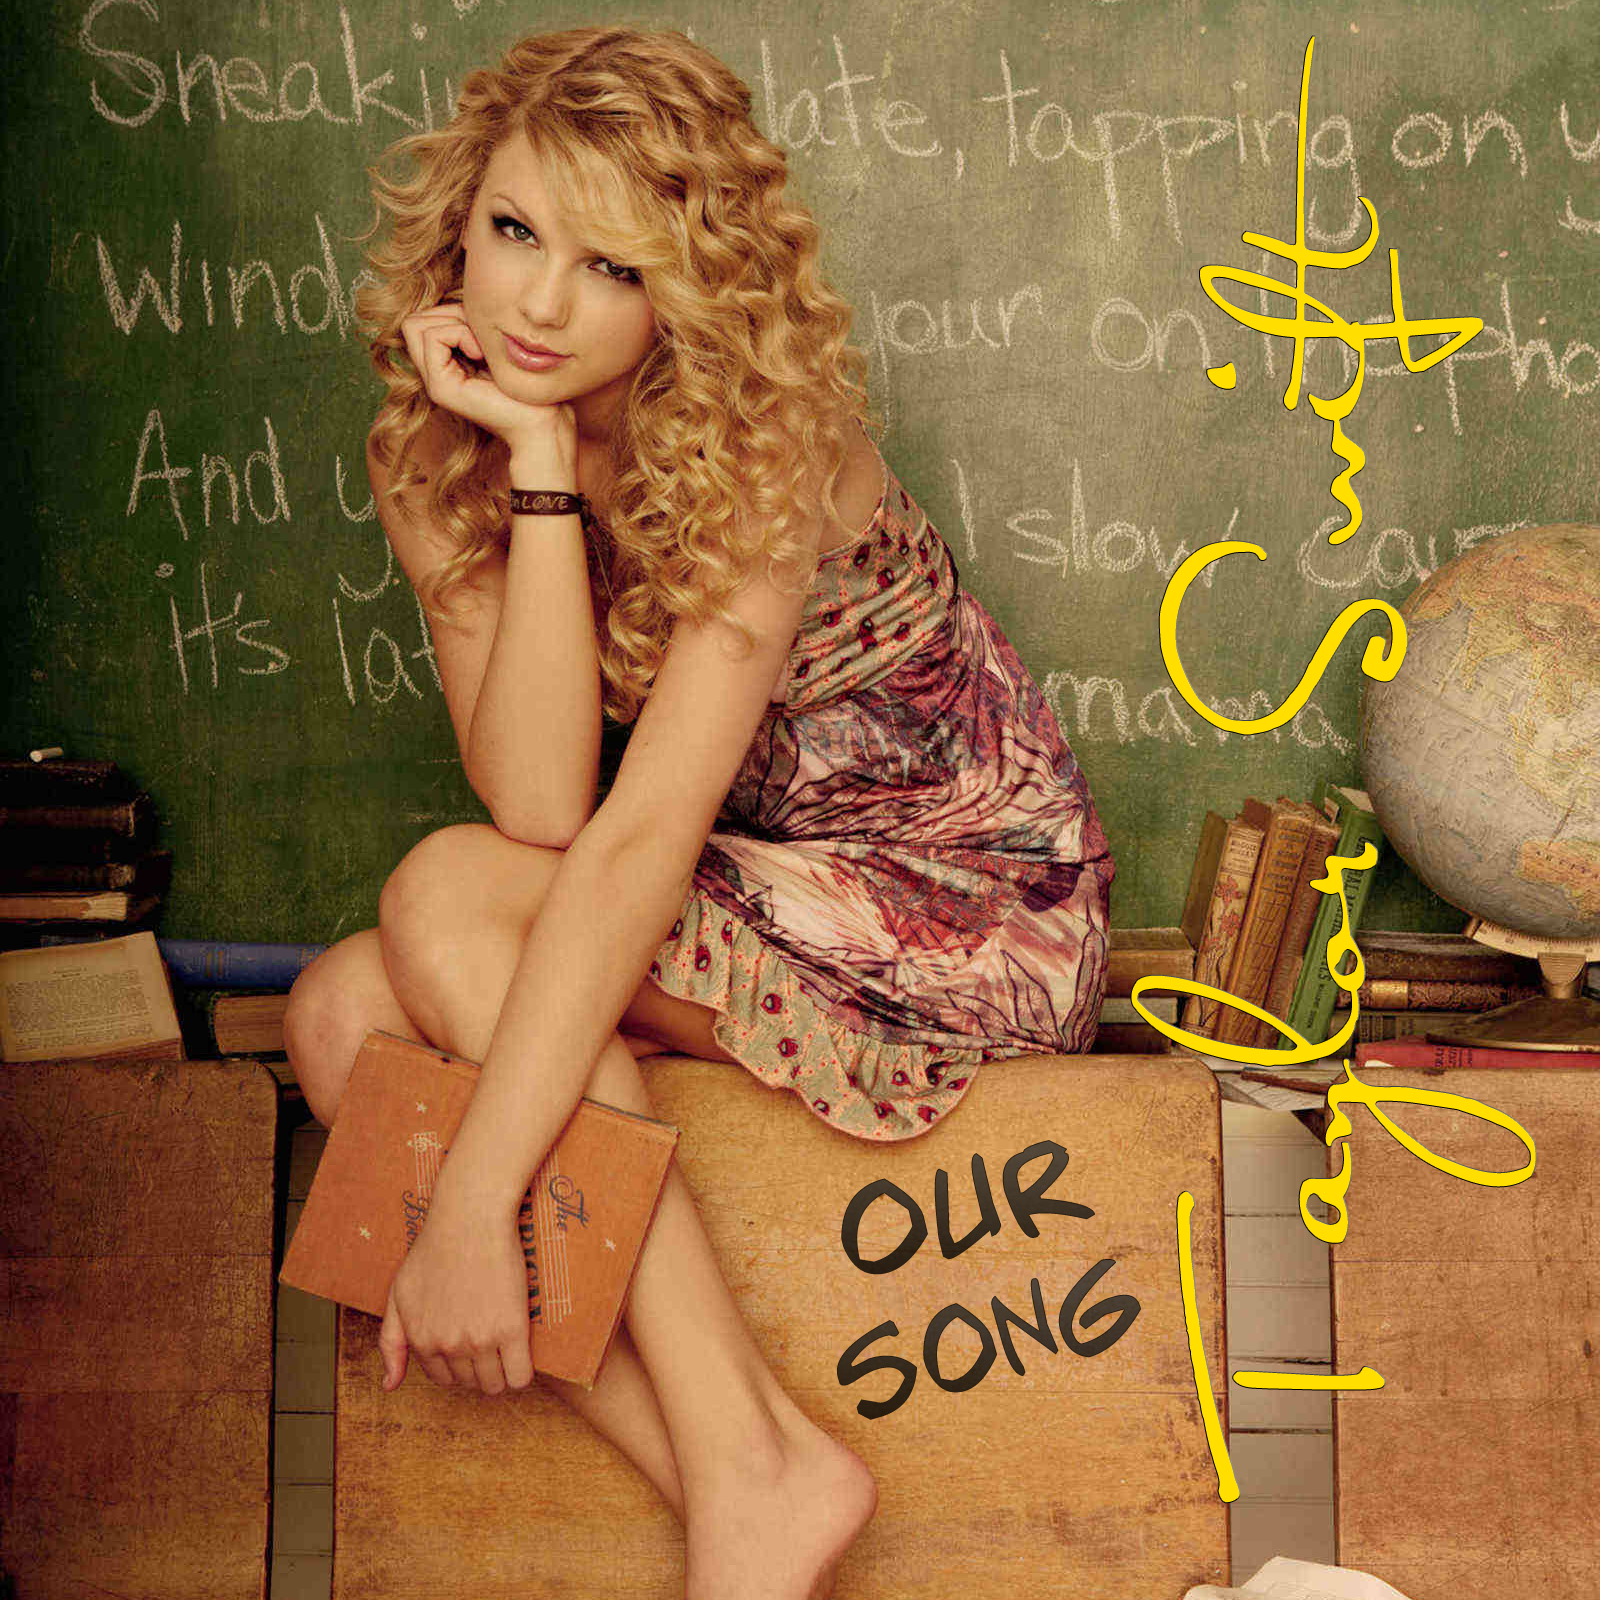 Taylor Swift - Our Song by mhelaonline07 on DeviantArt